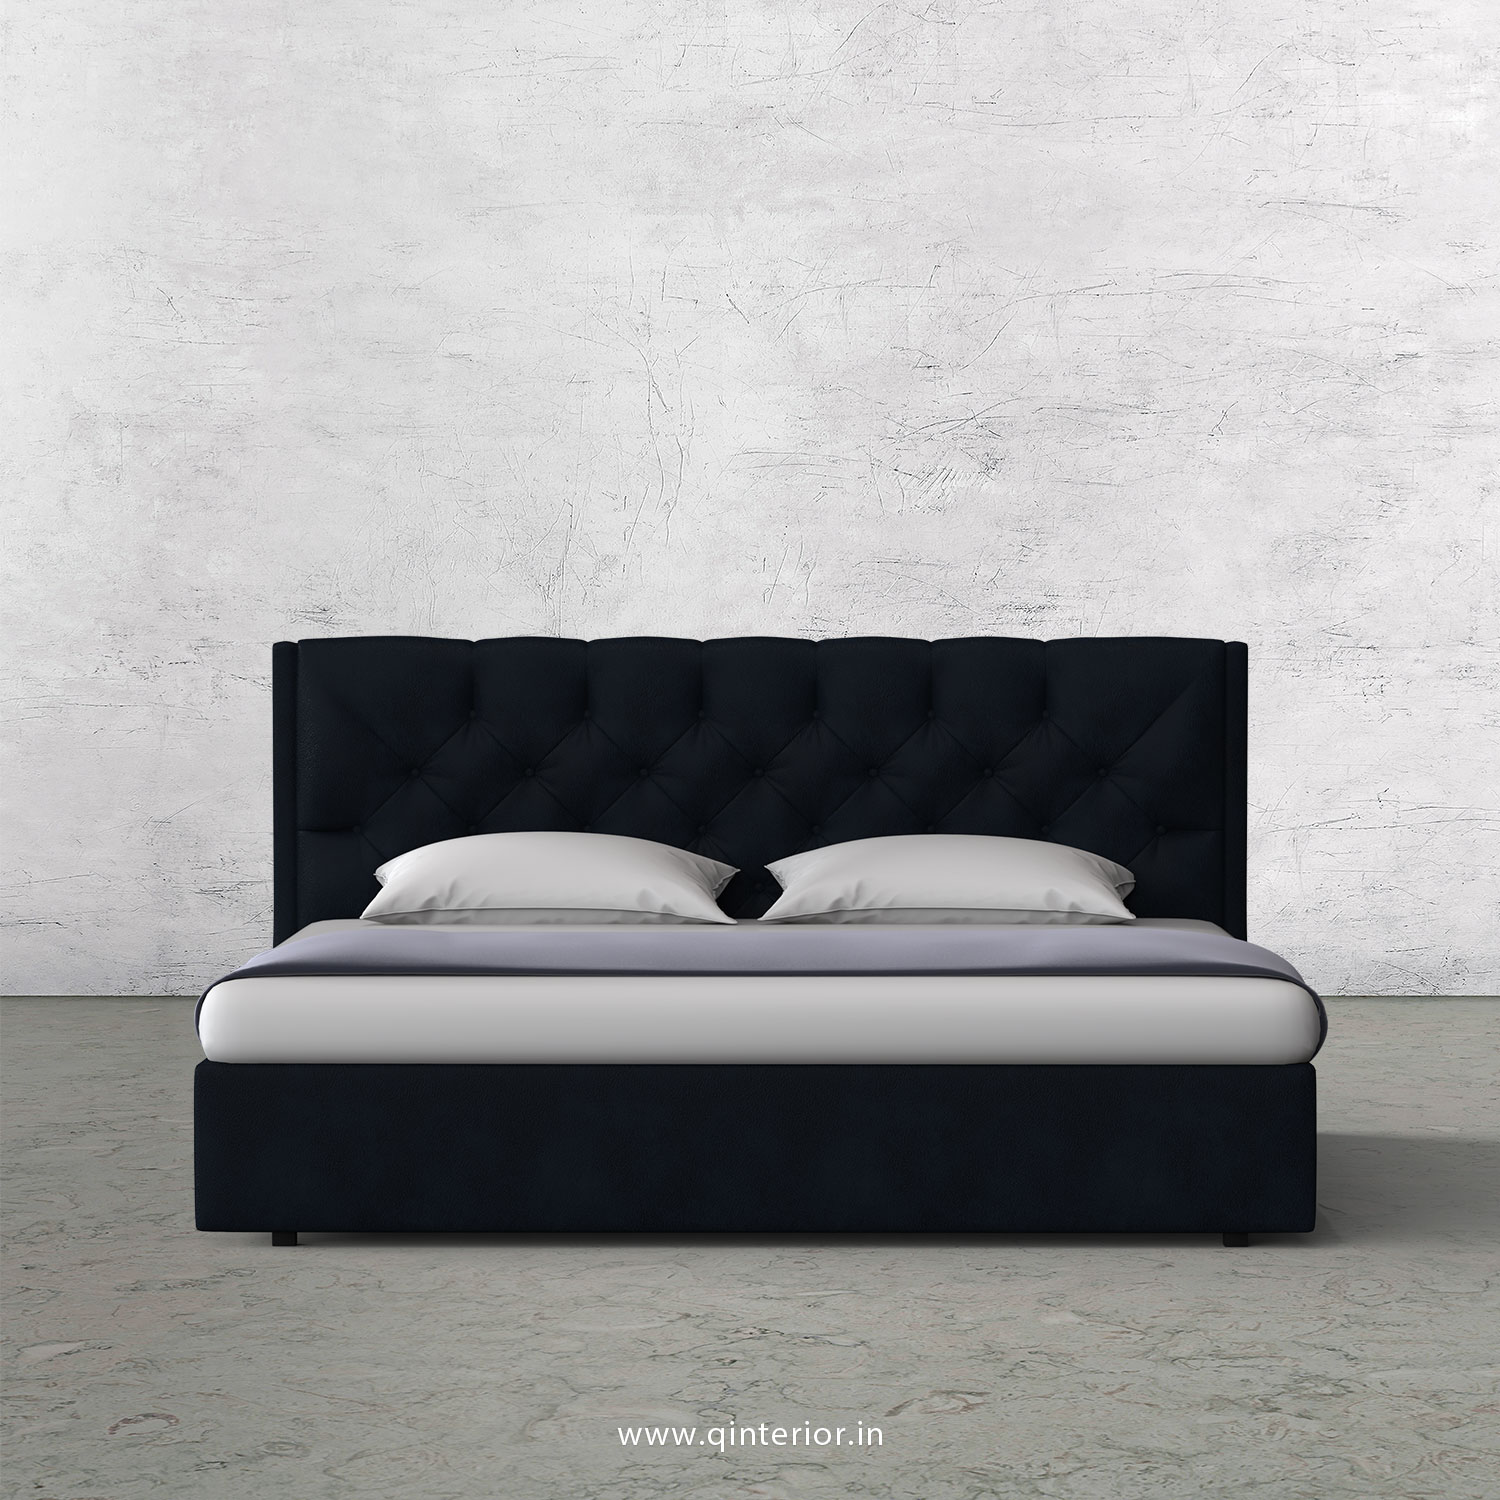 Scorpius Queen Bed in Fab Leather Fabric - QBD009 FL05